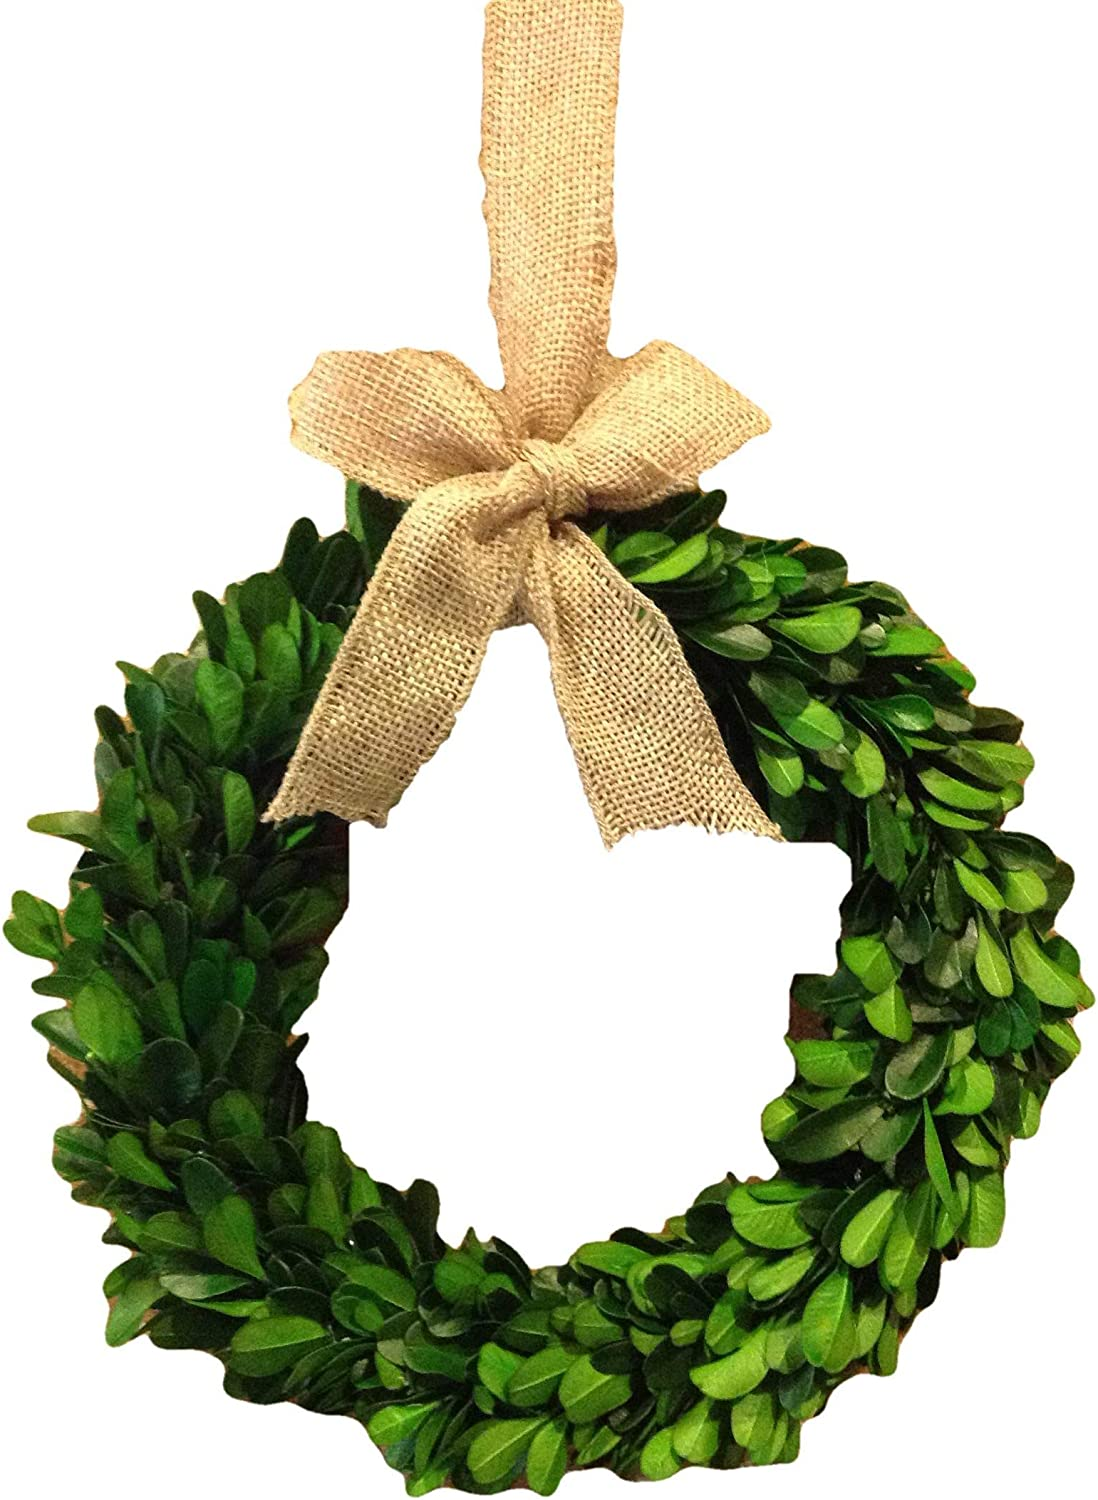 Flora Decor Preserved Boxwood Wreath W/Burlap Bow - 8""